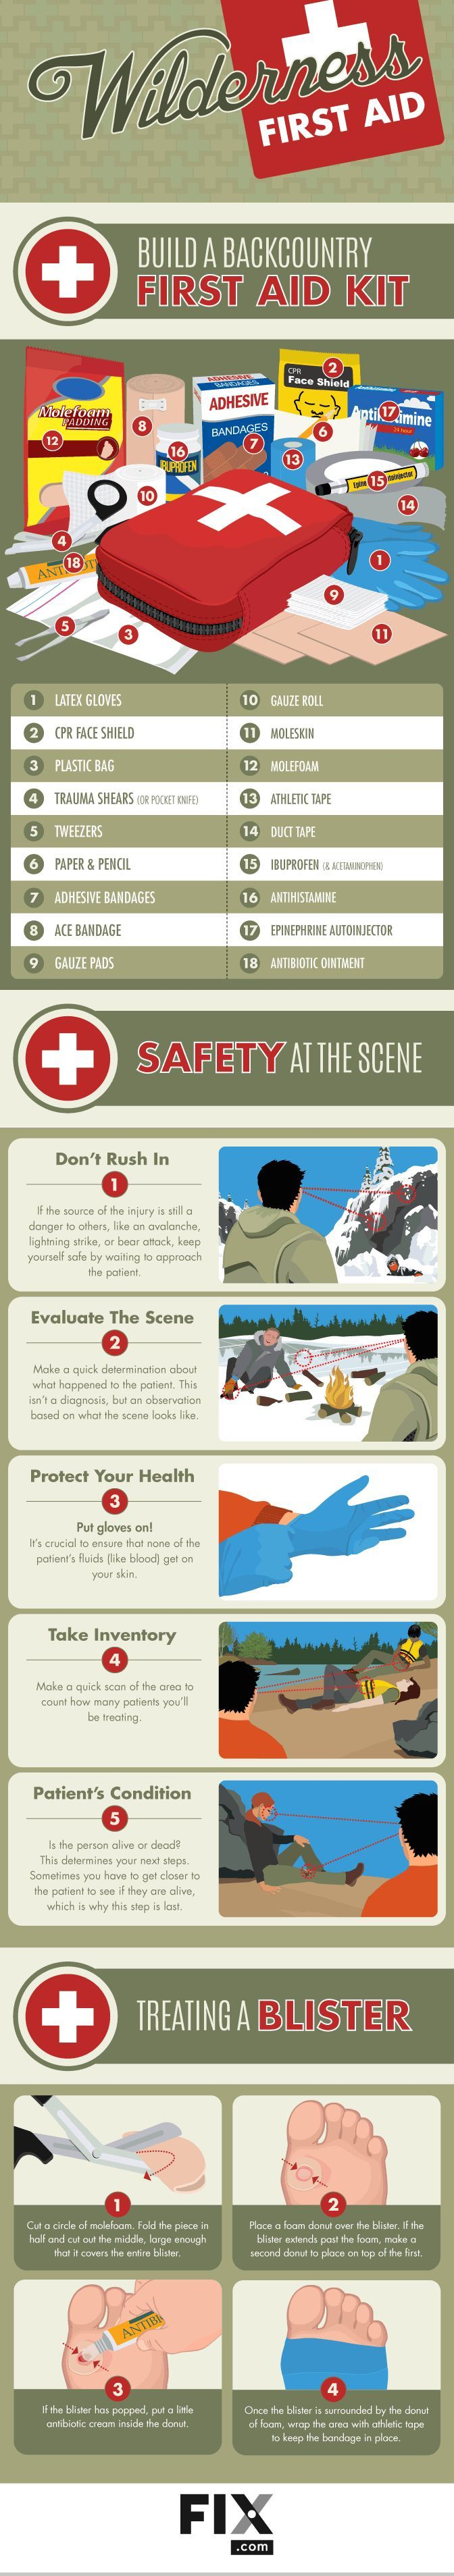 Study what to pack in your first help package earlier than heading out to the backcountry!....  See more at the image